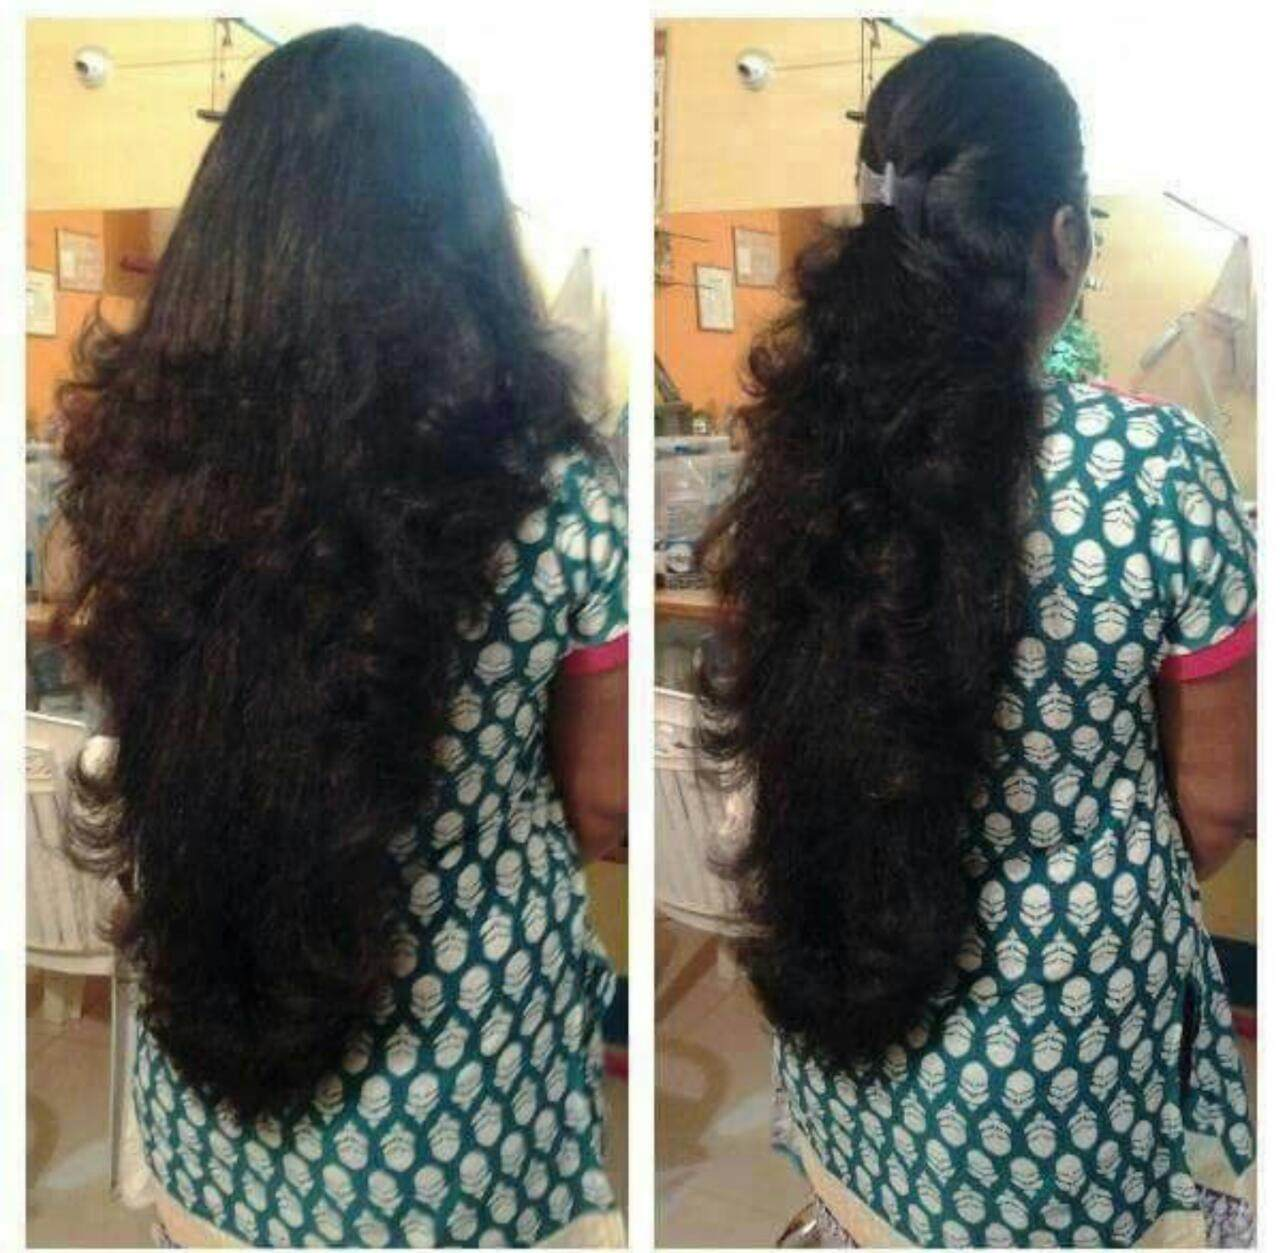 What Are The Latest Haircut Trends For Long Hair For Indian Girls